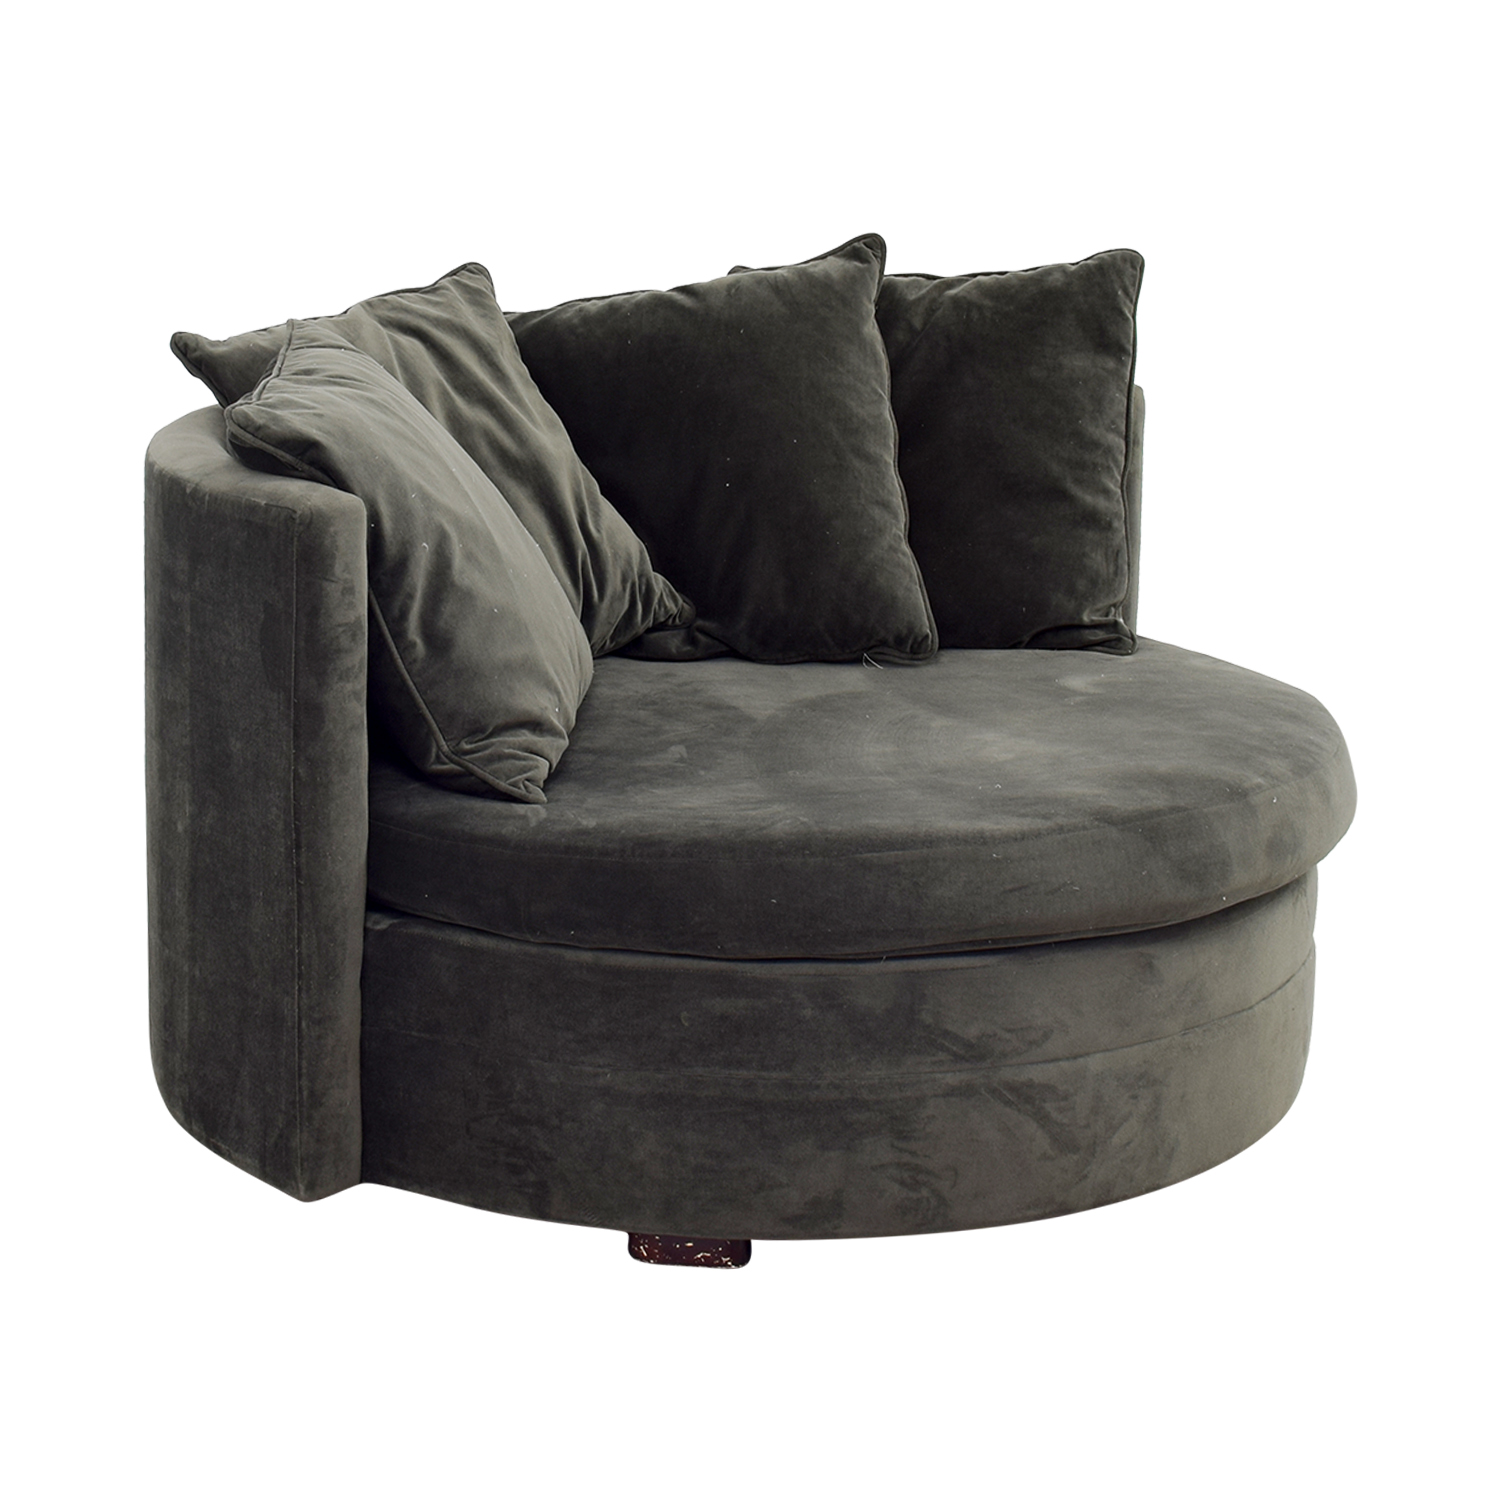 43% OFF e Kings Lane e Kings Lane Green Velvet Love Seat Sofas